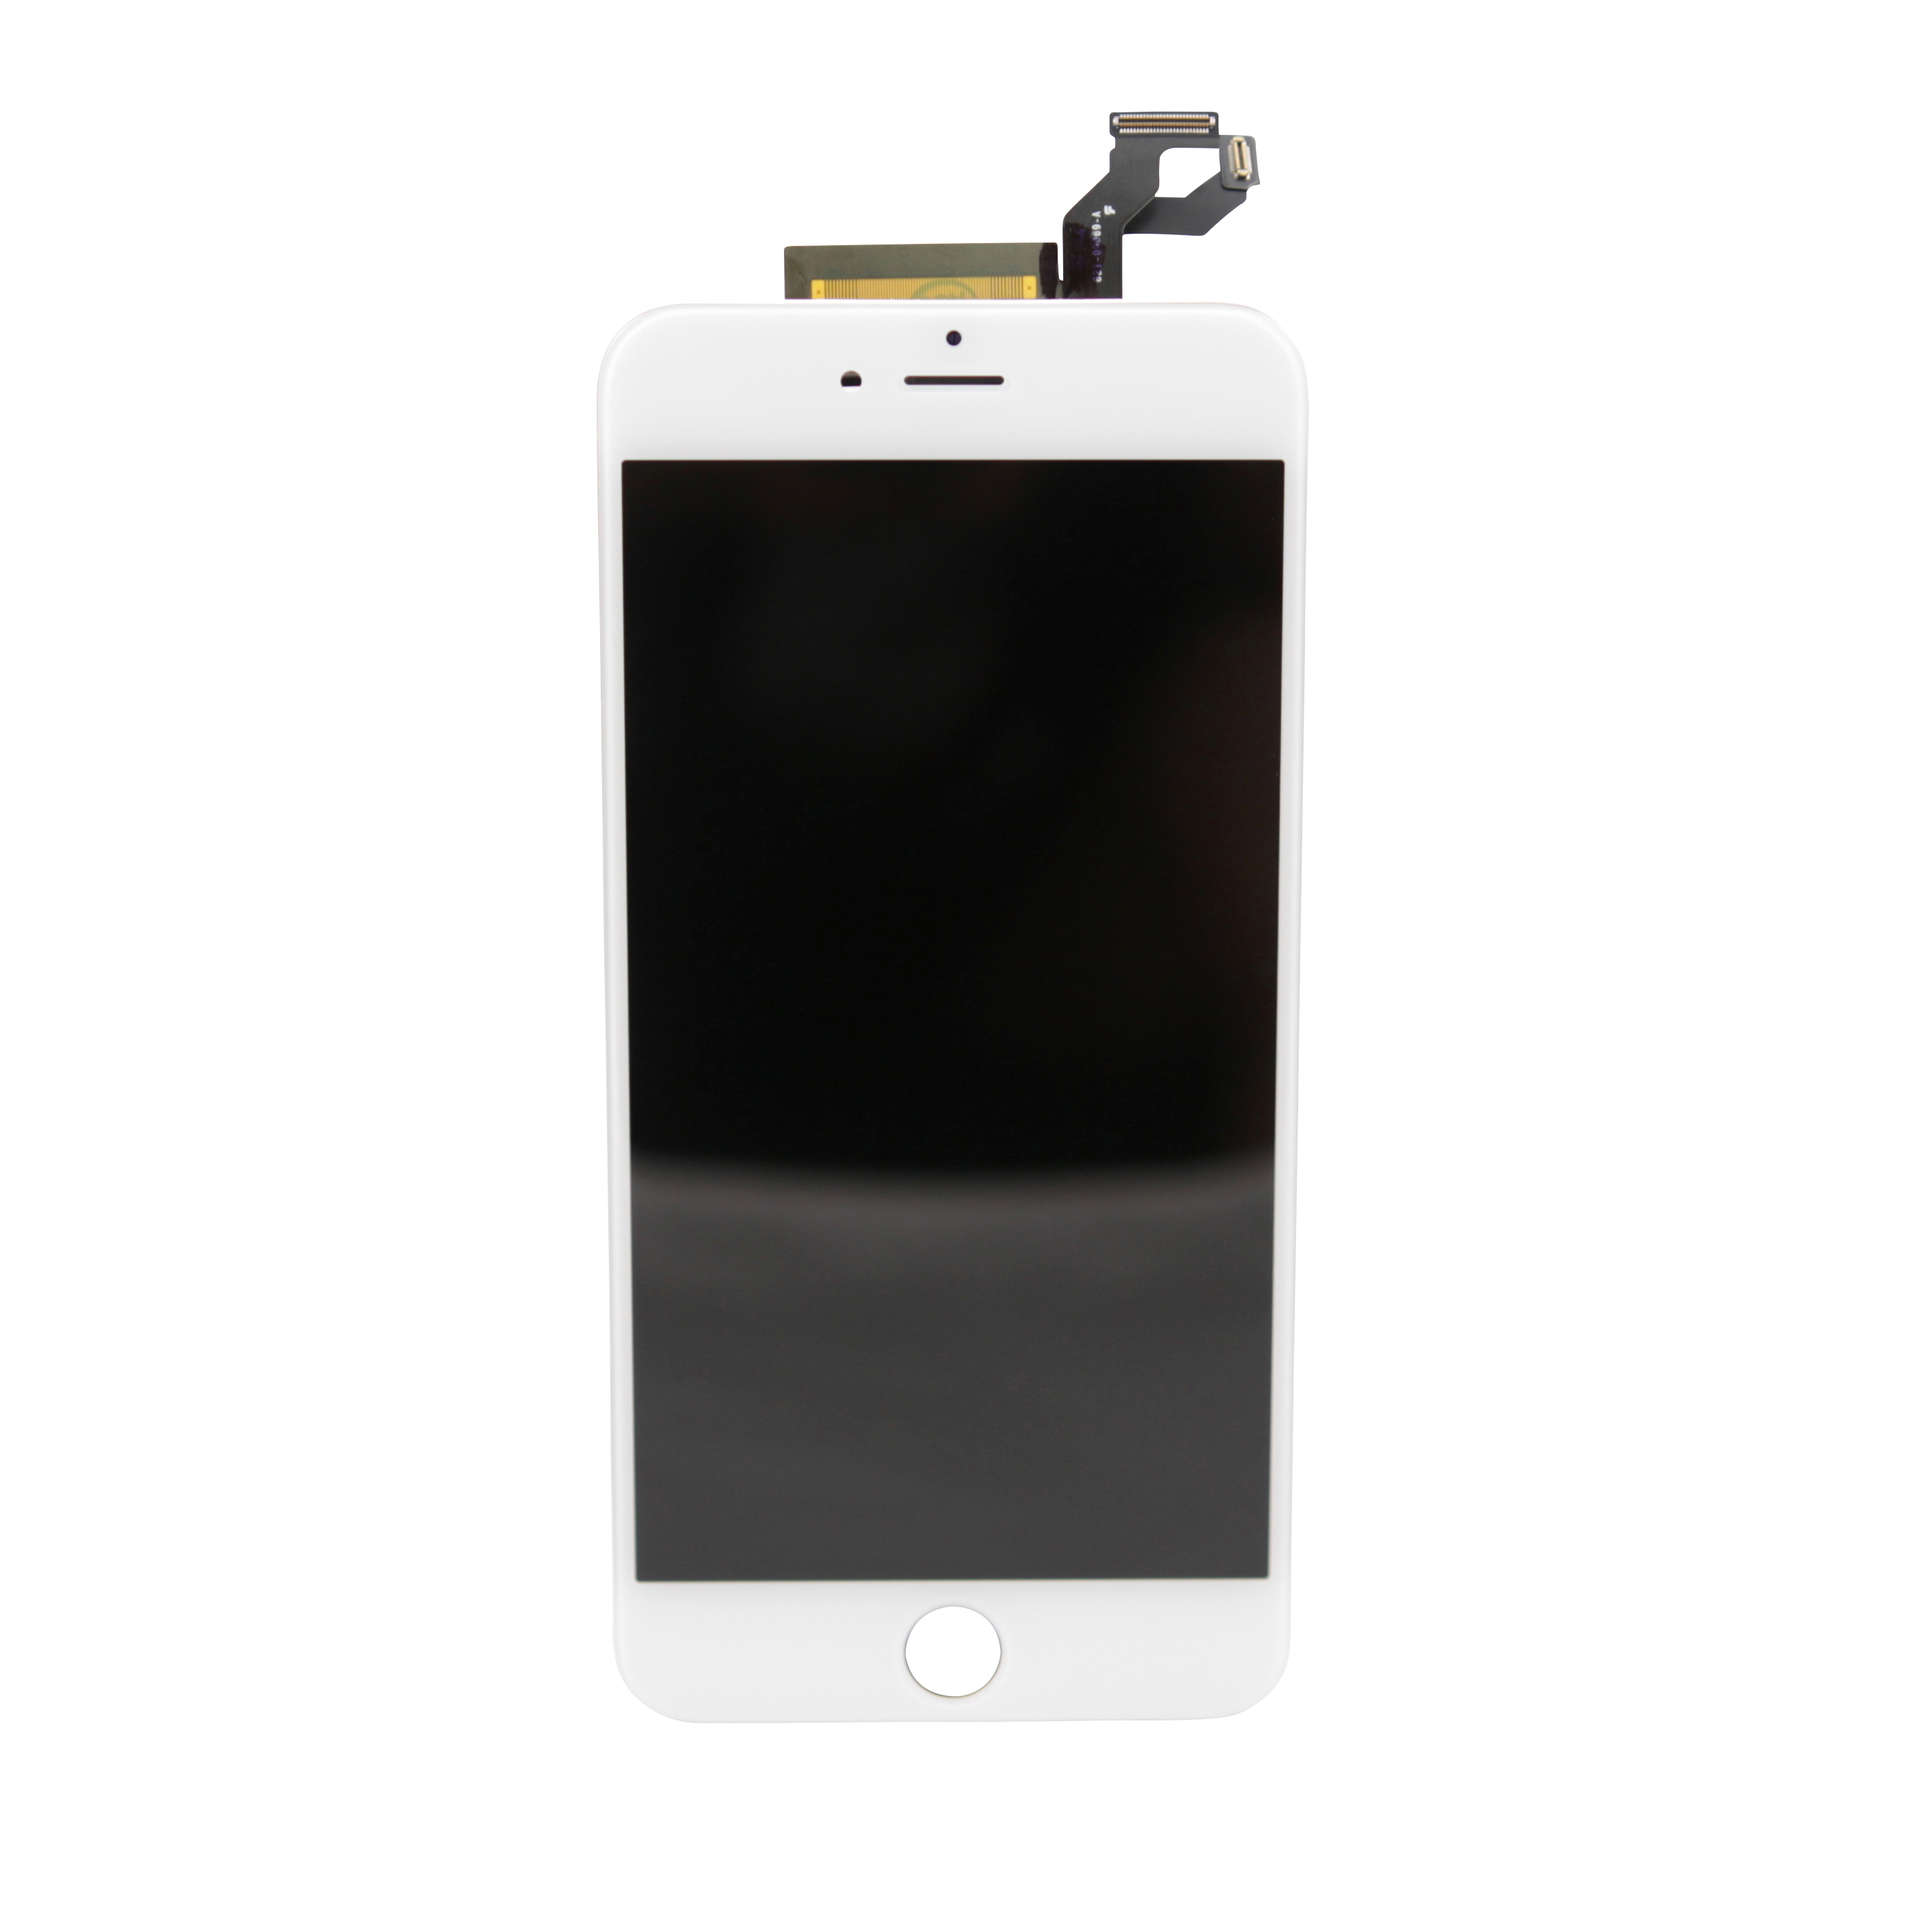 iPhone 6S Plus Replacement Screen (White)